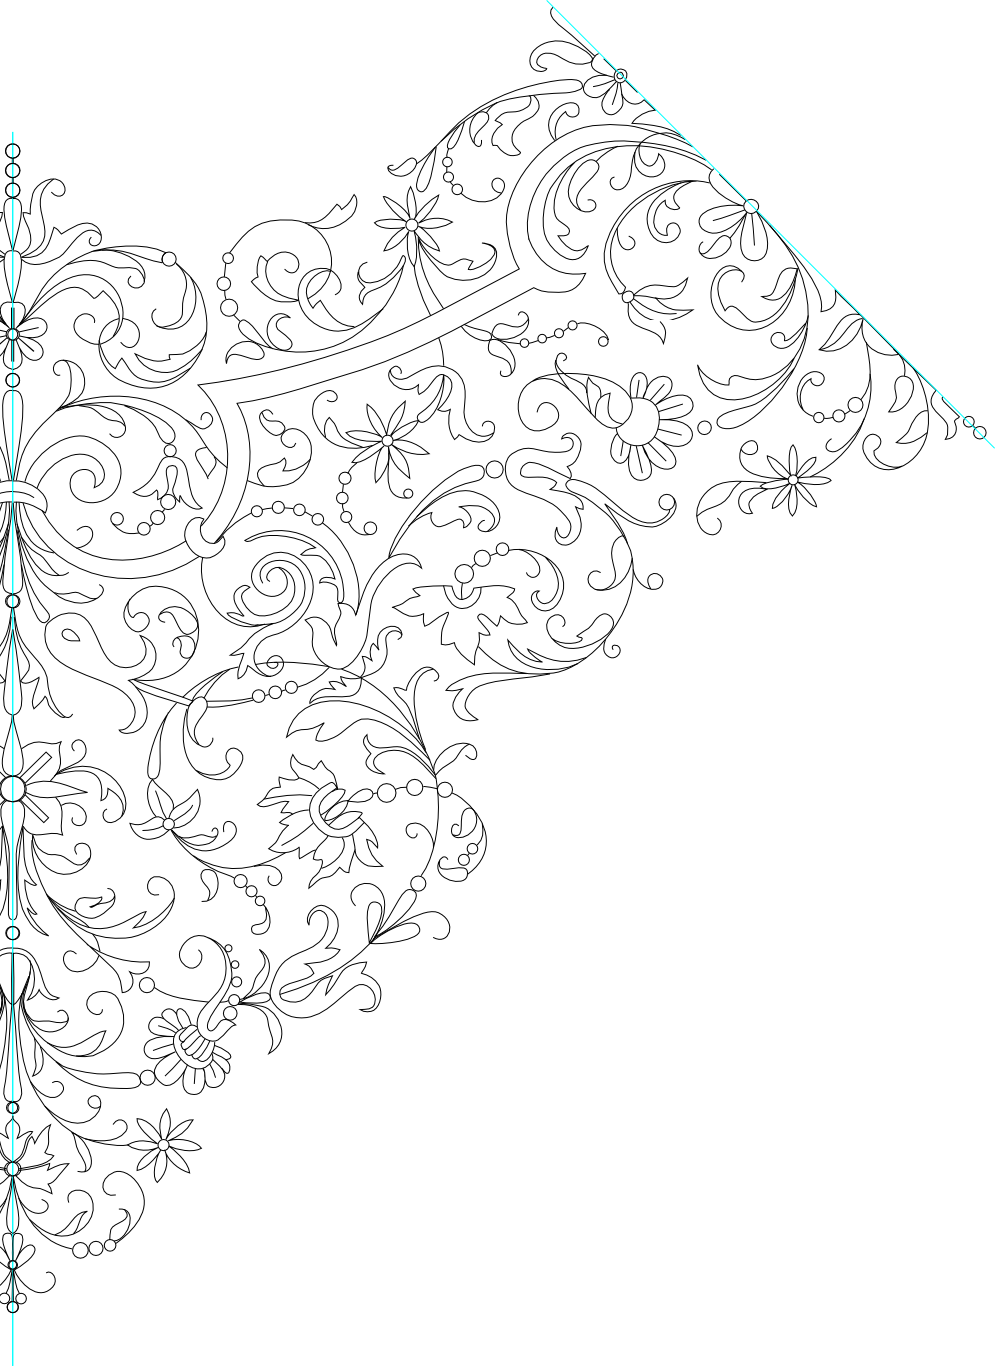 Handkerchief Embroidery Pattern Lineart by Kithplana on